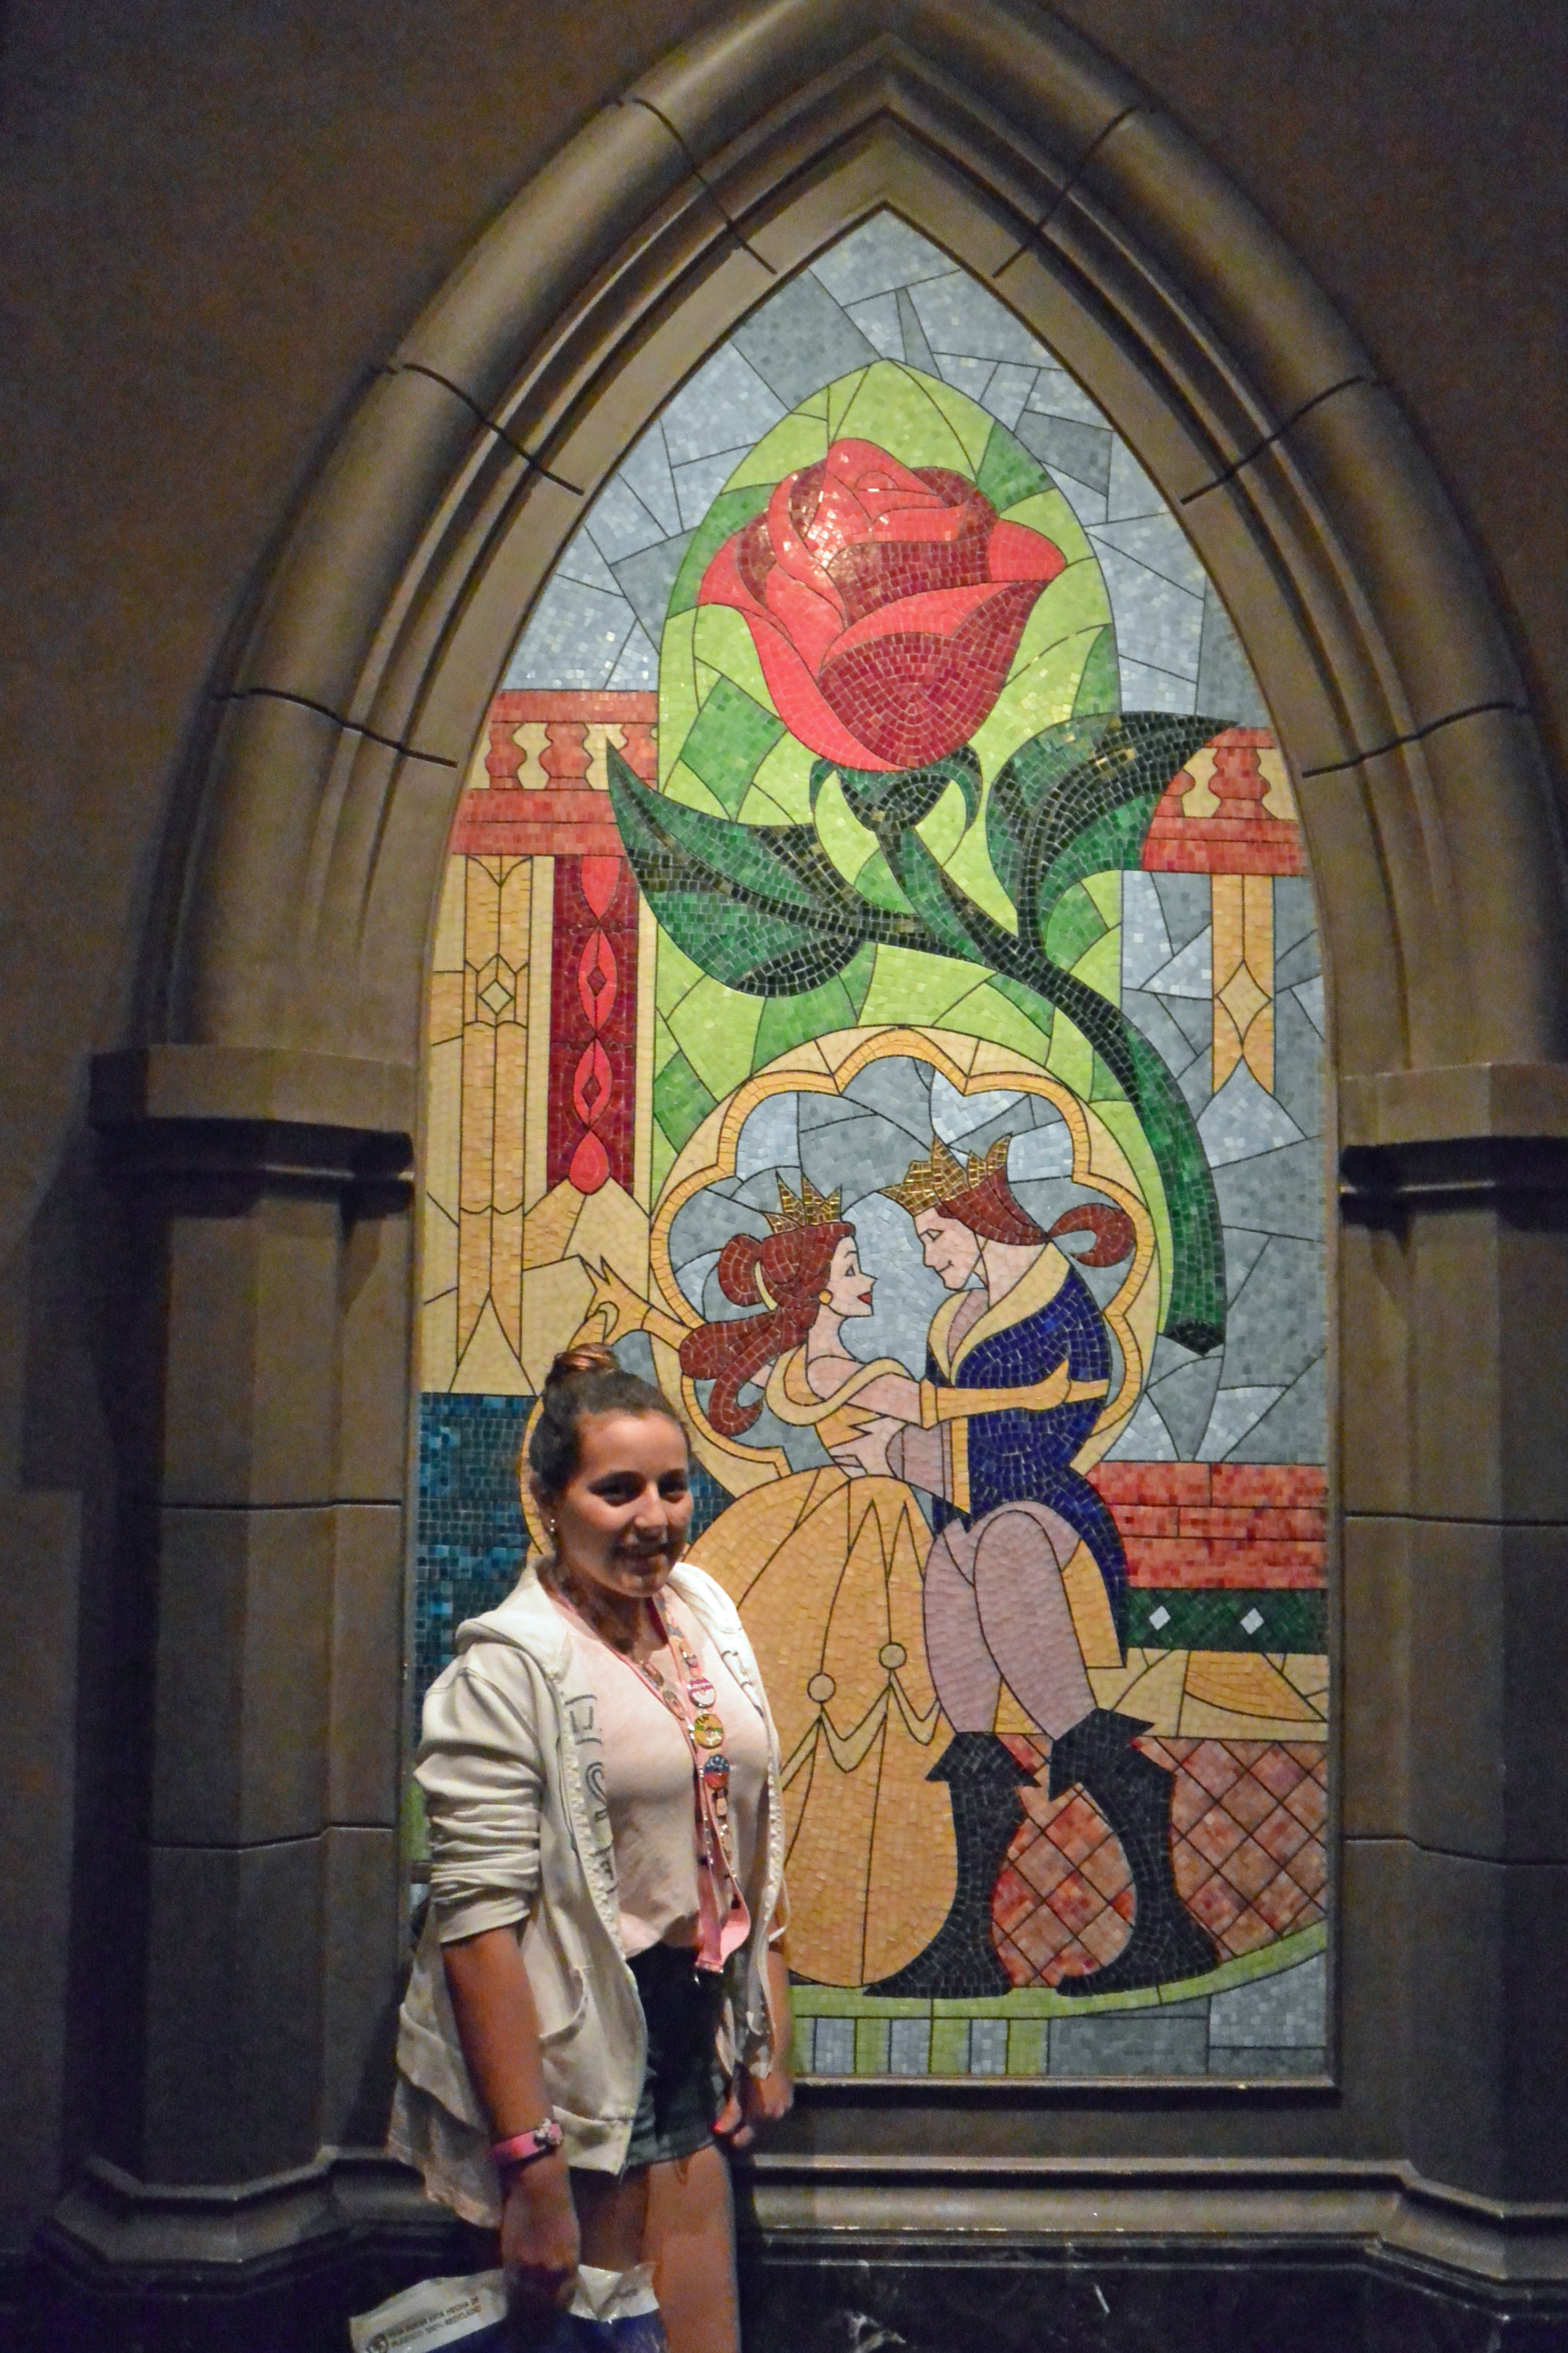 The beautiful stained glass window at the entrance.